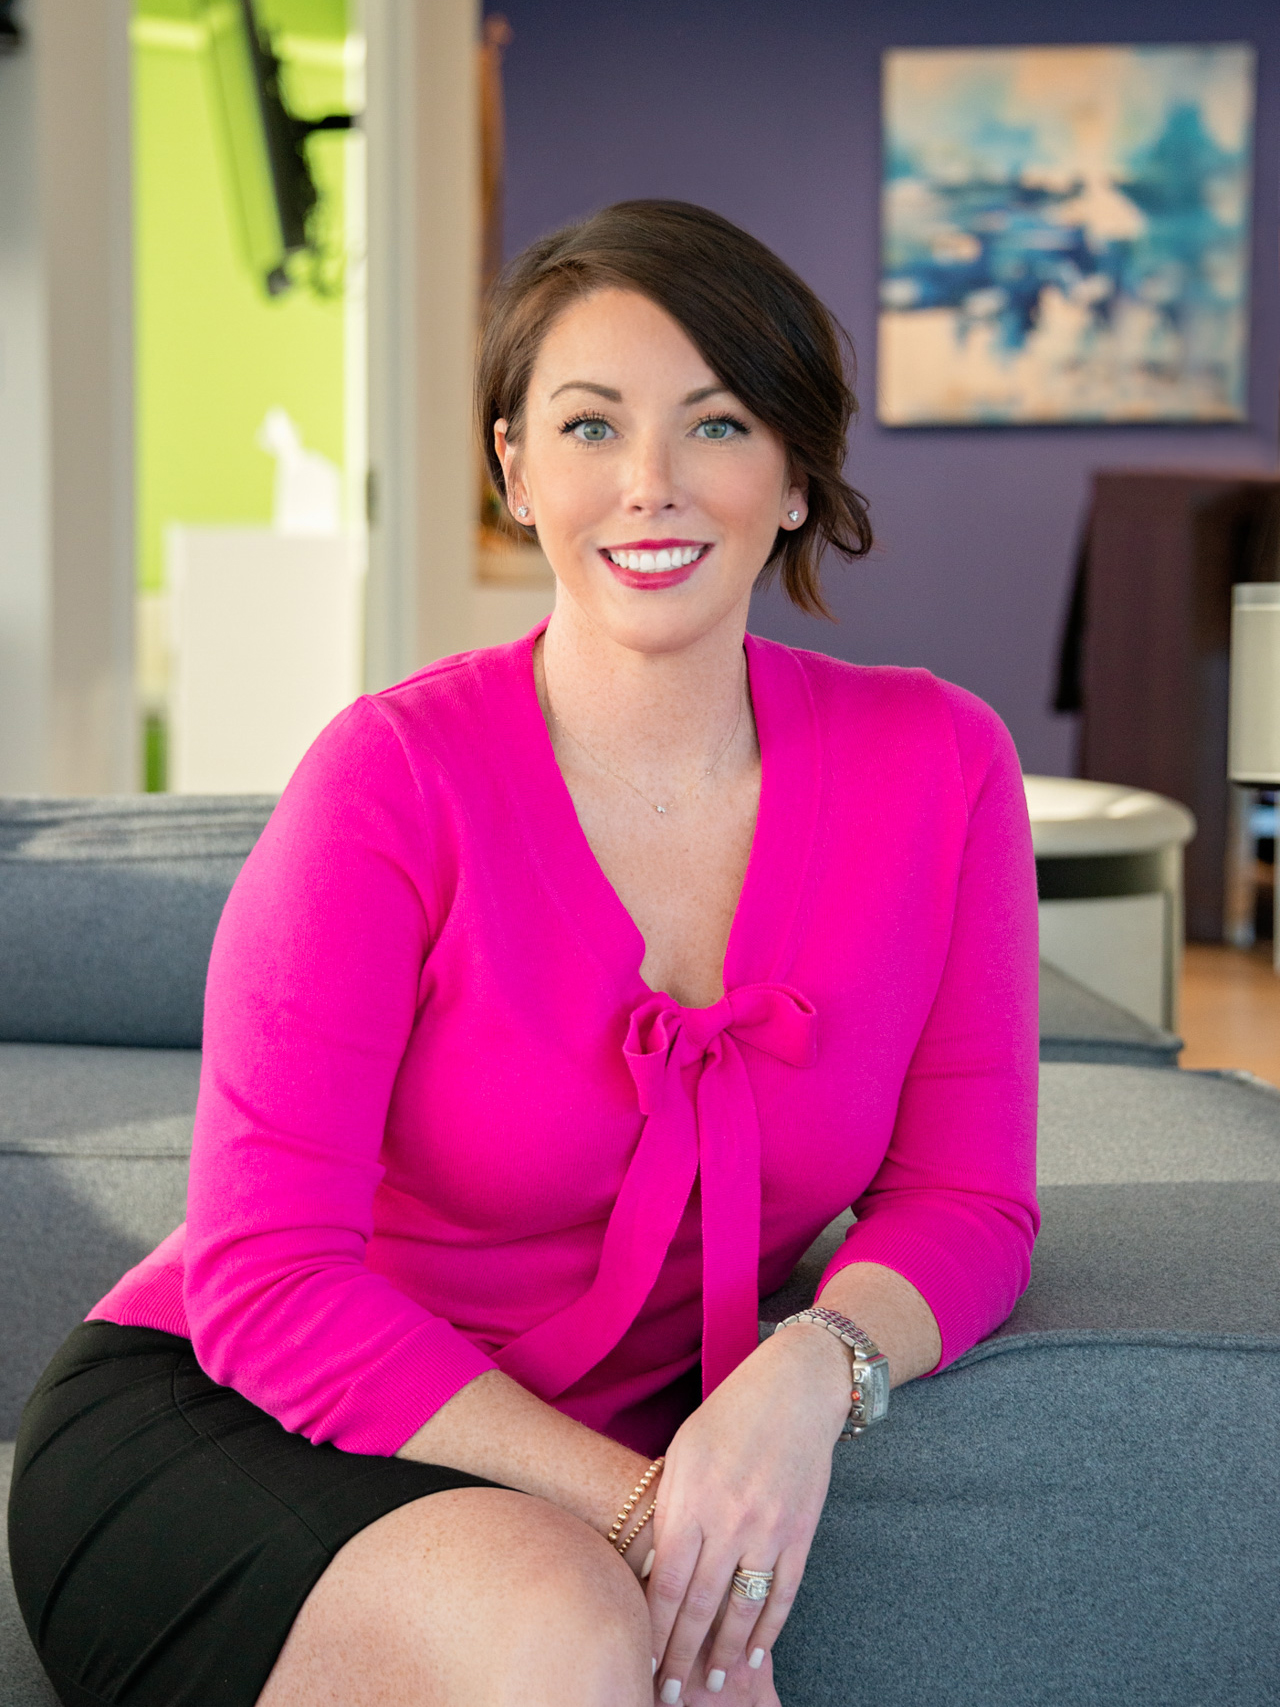 creative lifestyle professional headshot of a realtor, photographed by jamie bannon photography.